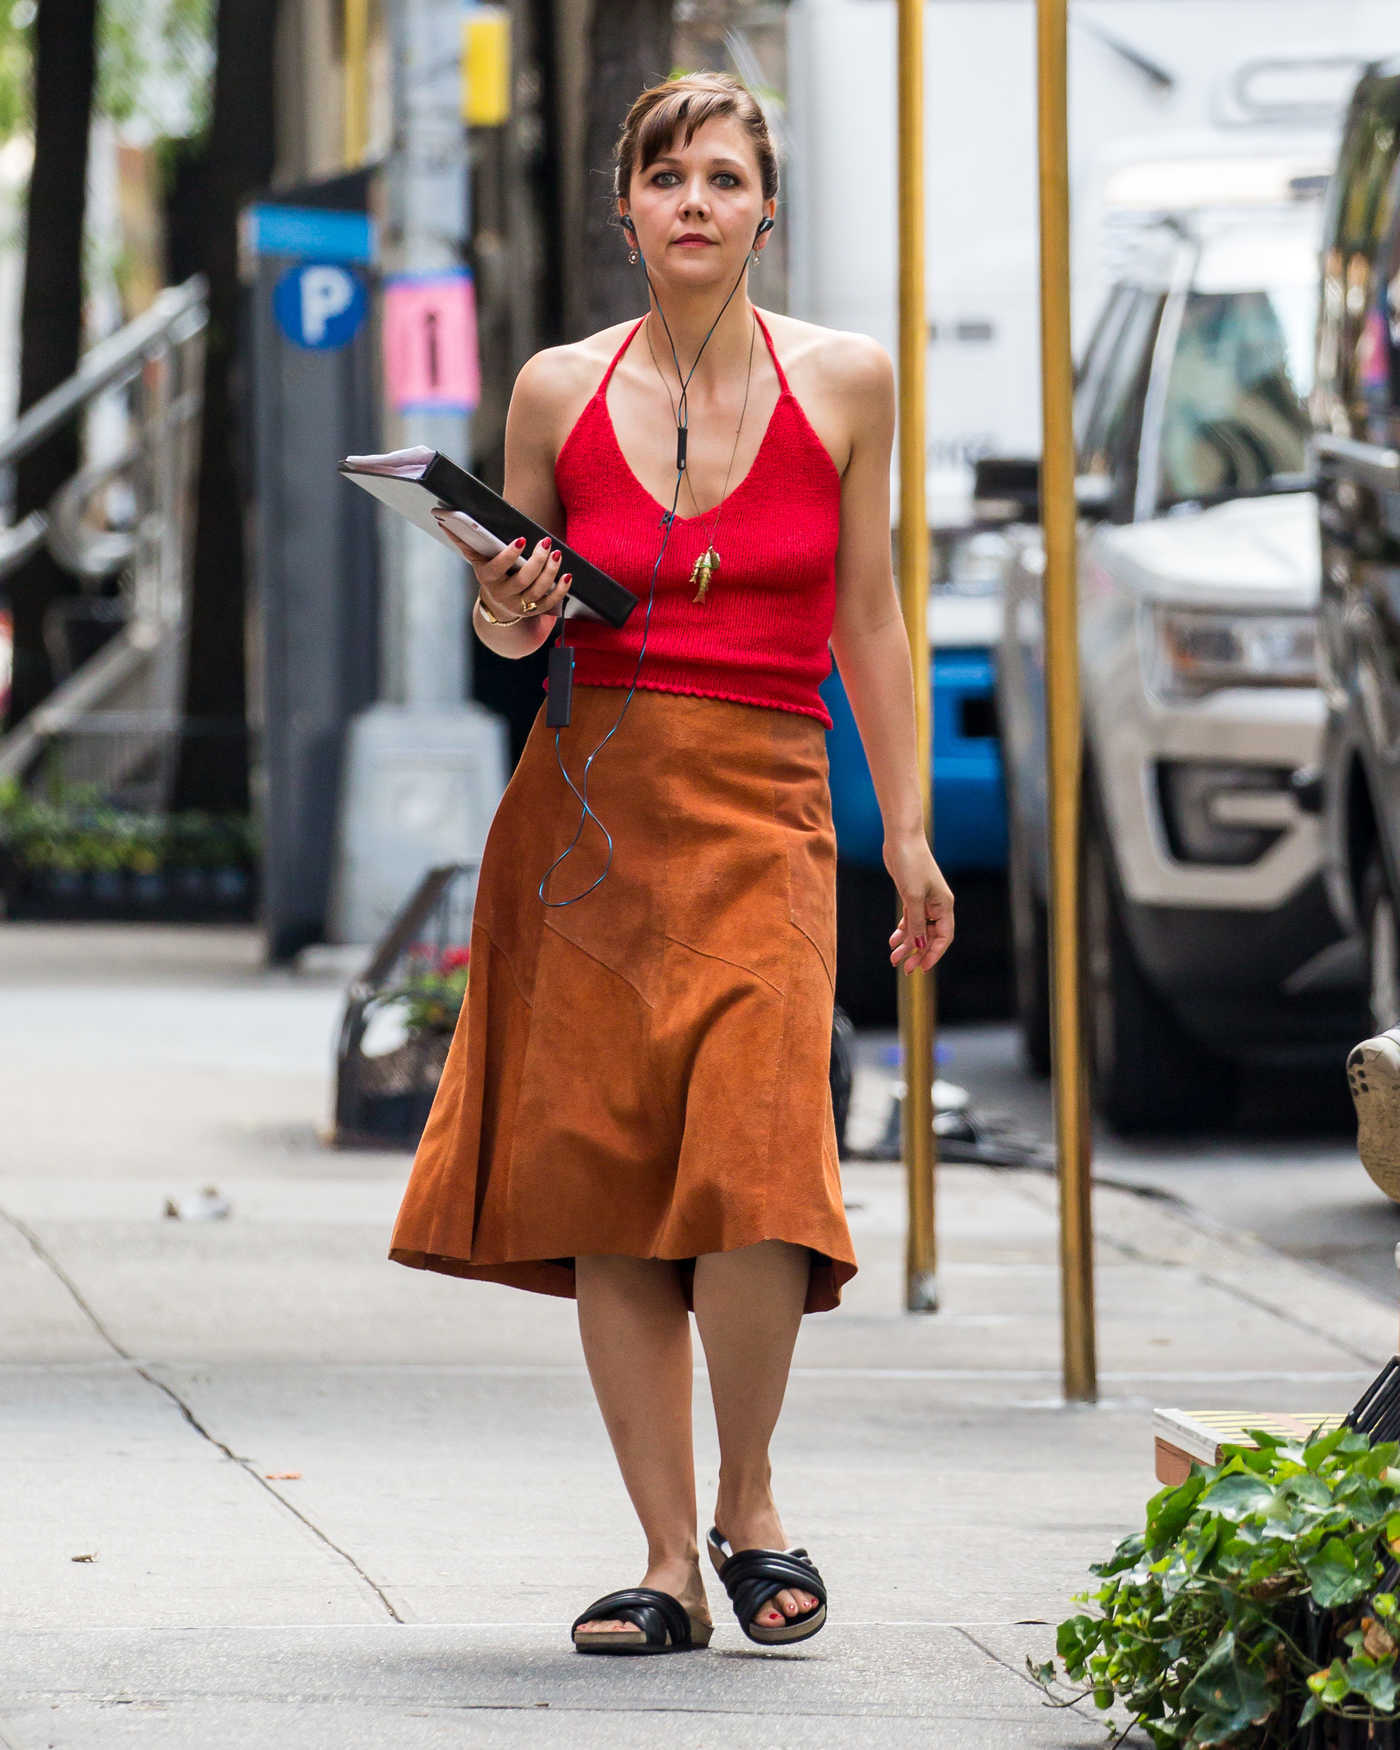 Maggie Gyllenhaal on Set of The Deuce in New York City 07/09/2016